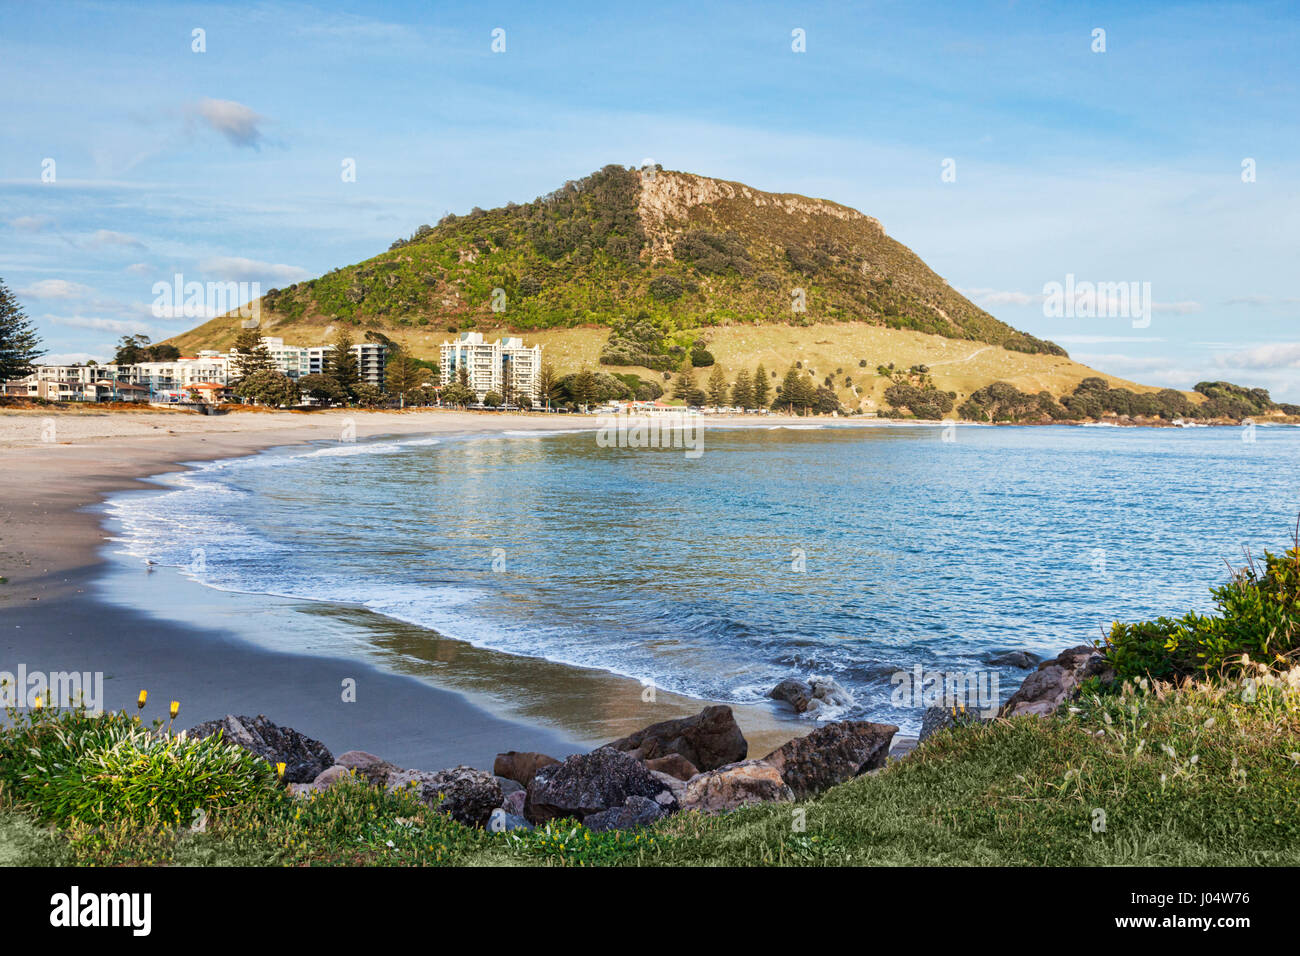 Mount Maunganui, Bay of Plenty, New Zealand. Focus on foreground. - Stock Image